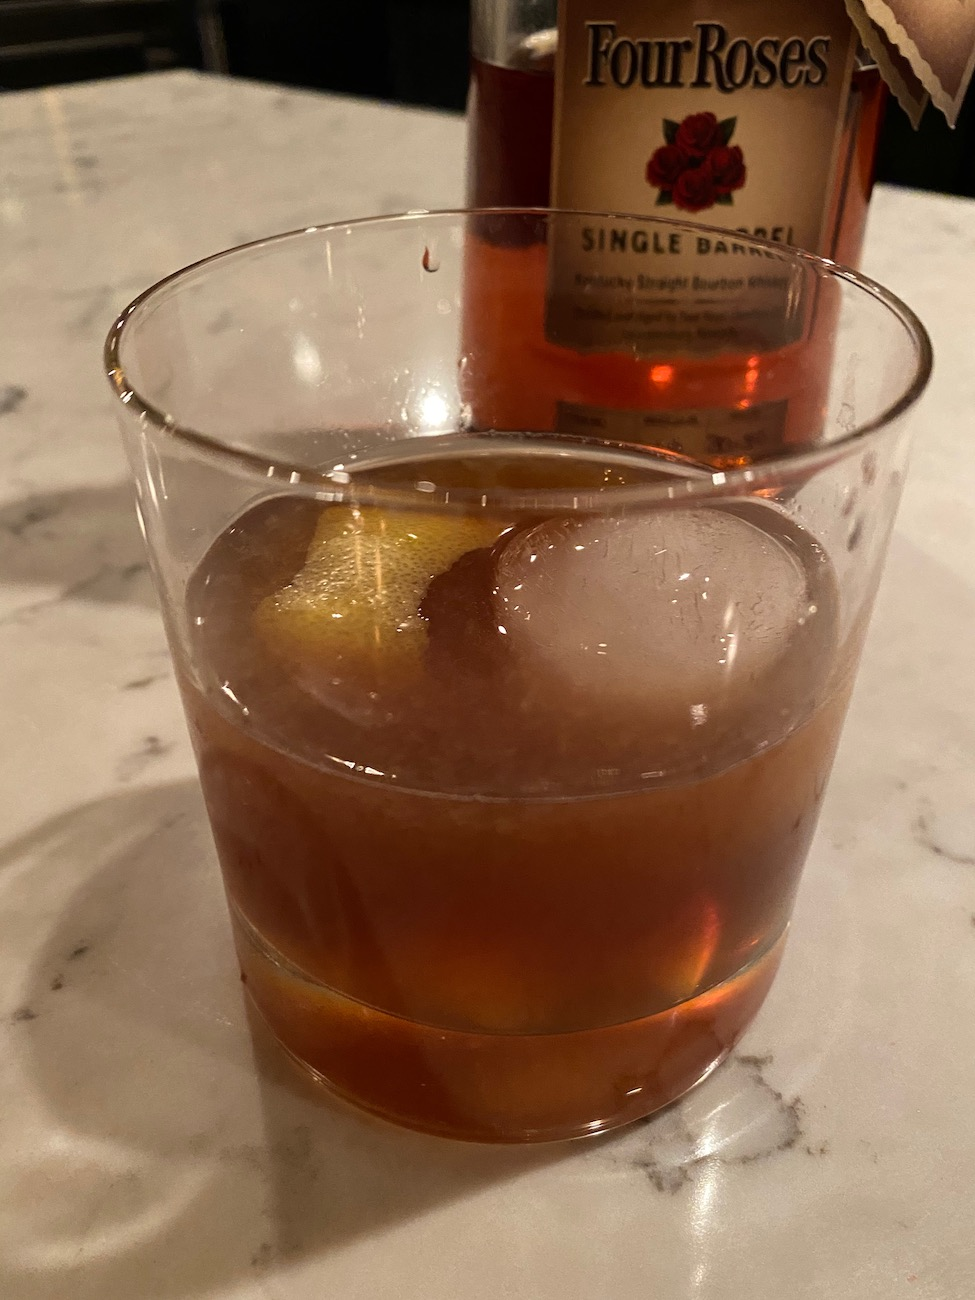 The delicious Hey Honey cocktail at the Cherry Valley Hotel is made with Four Roses Small Batch, honey simple syrup, angostura bitters, and a lemon garnish.{ }ADDRESS: 2299 Cherry Valley Road, Newark, OH (43055) / Image: Chez Chesak // Published: 2.12.21